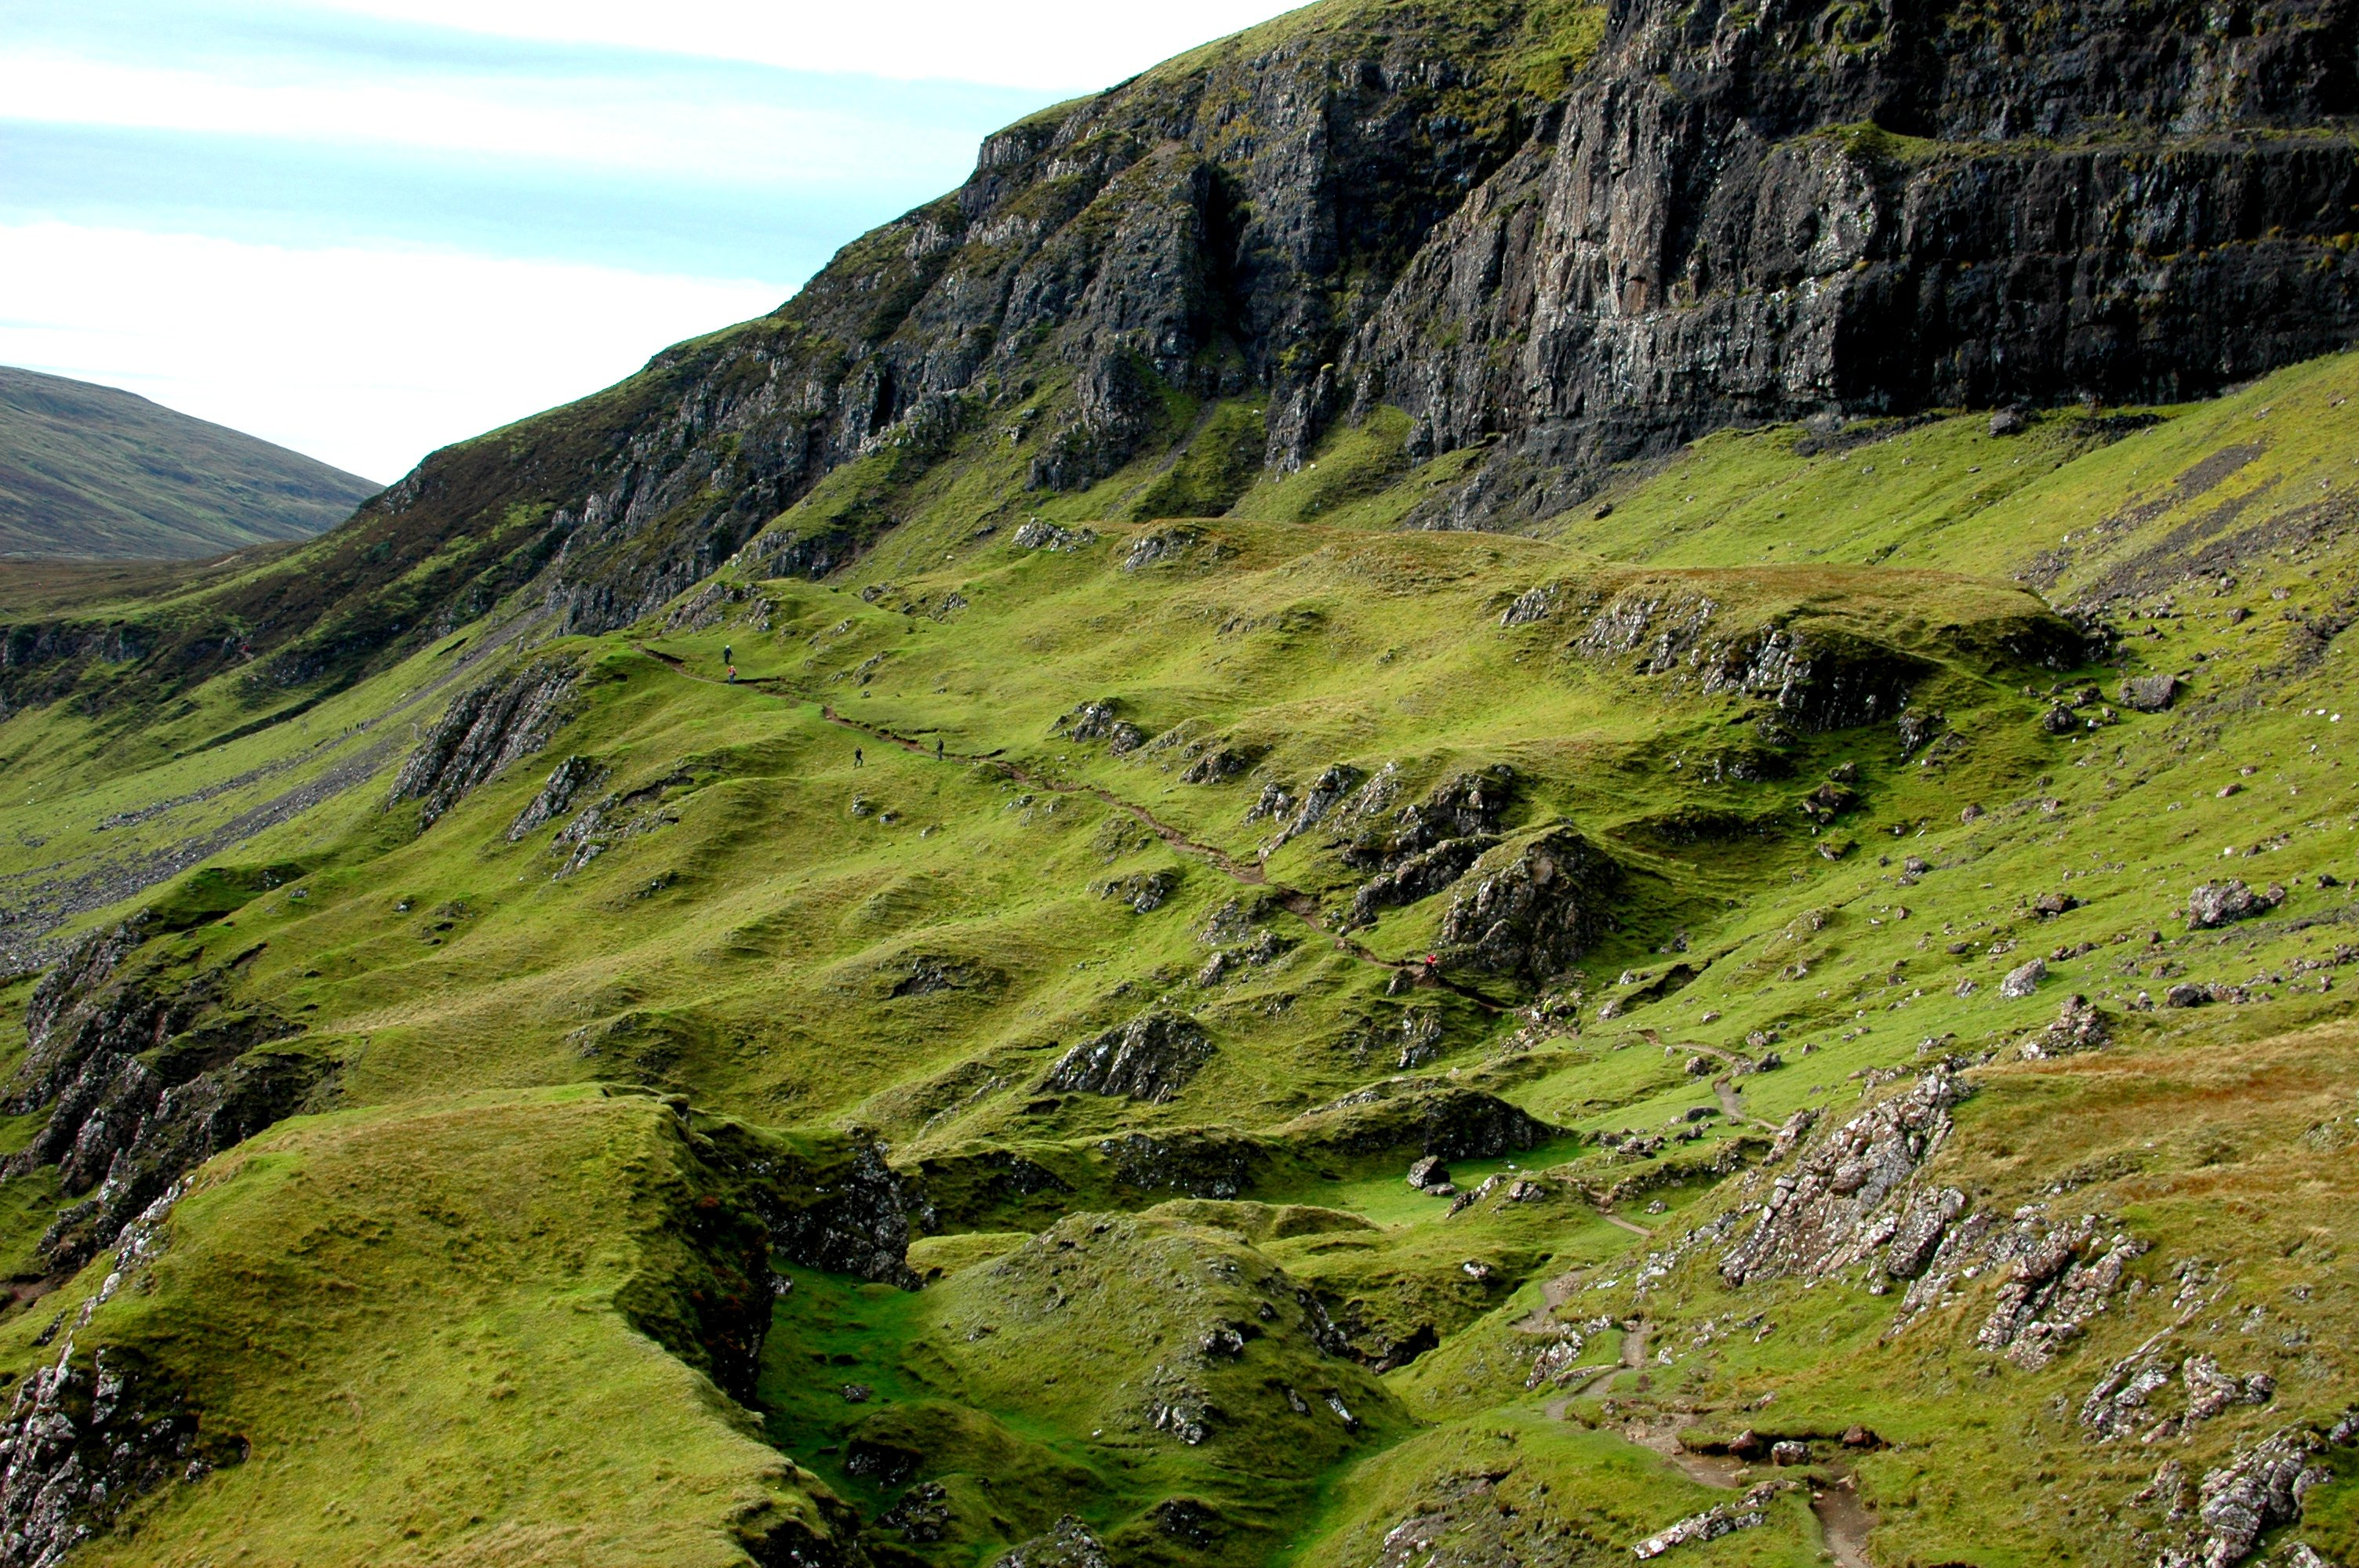 Hiking the Quiraing on the Isle of Skye, Scotland